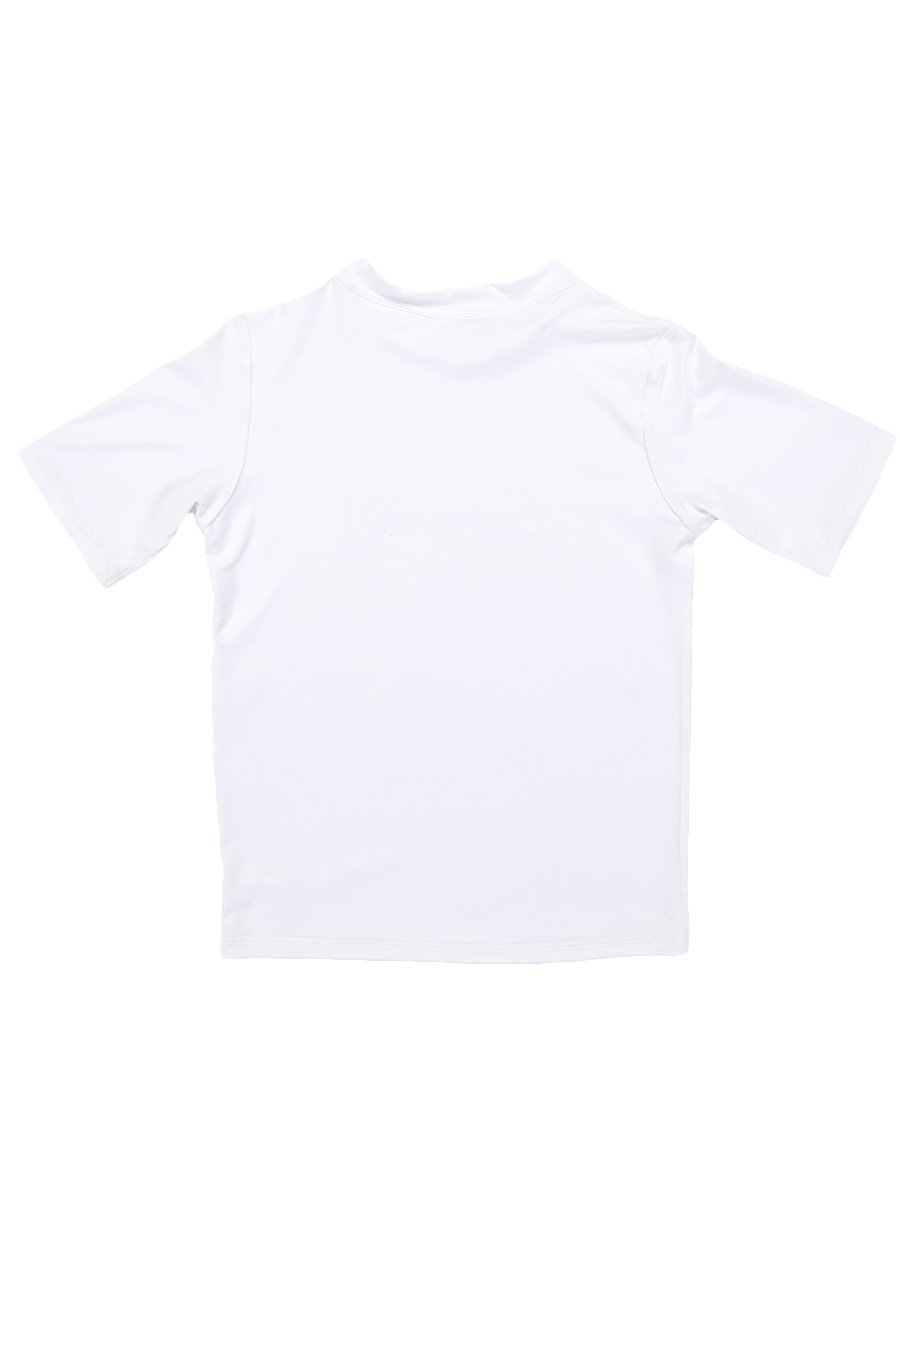 Kids Shark S/S Rashguard - White - Shore